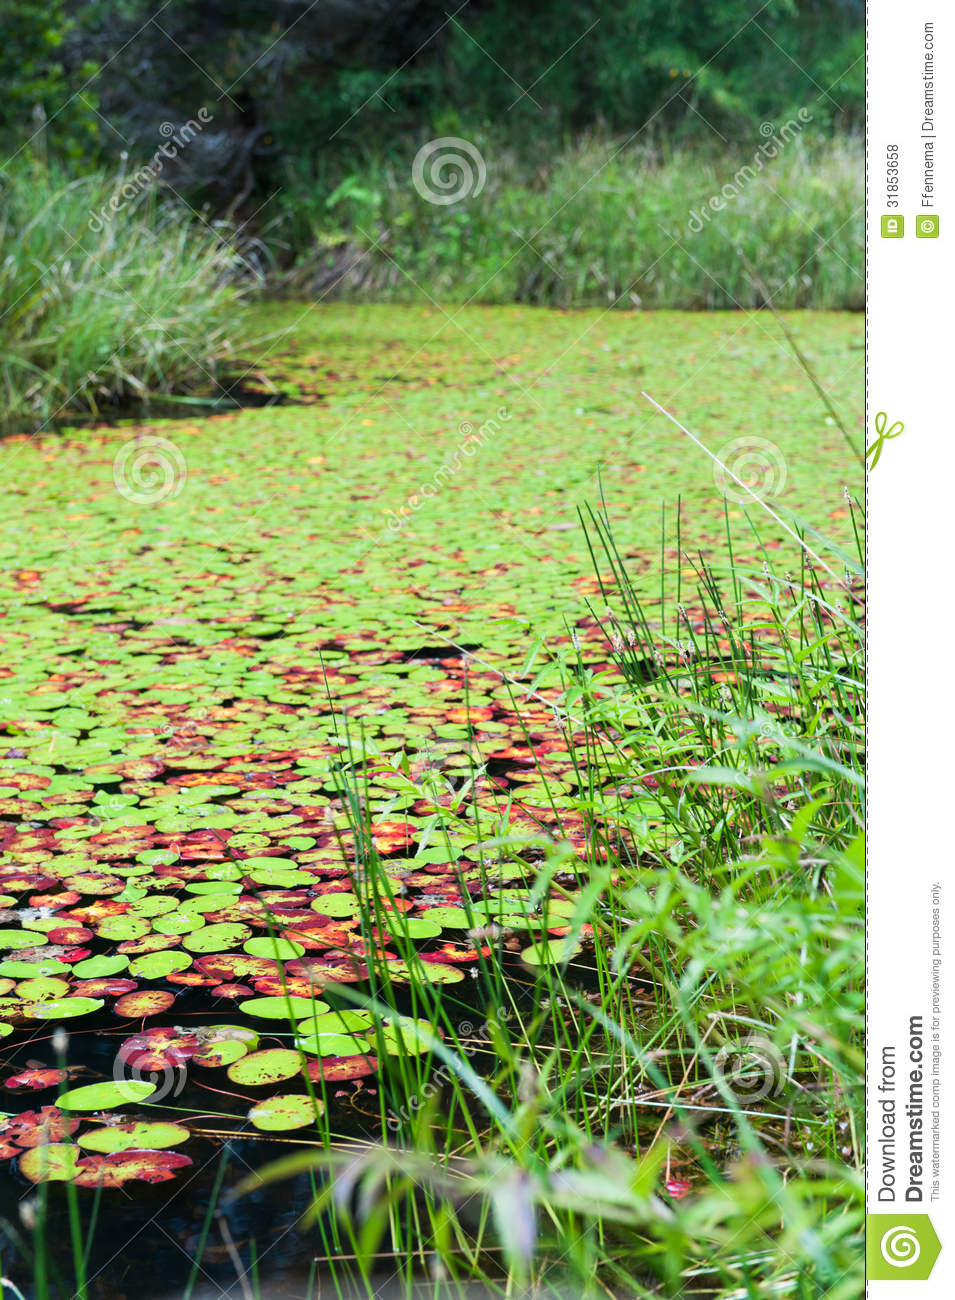 ... similar stock images of ` Lily pads almost cover a lake completely: dreamstime.com/royalty-free-stock-photos-lily-pads-cover-lake...